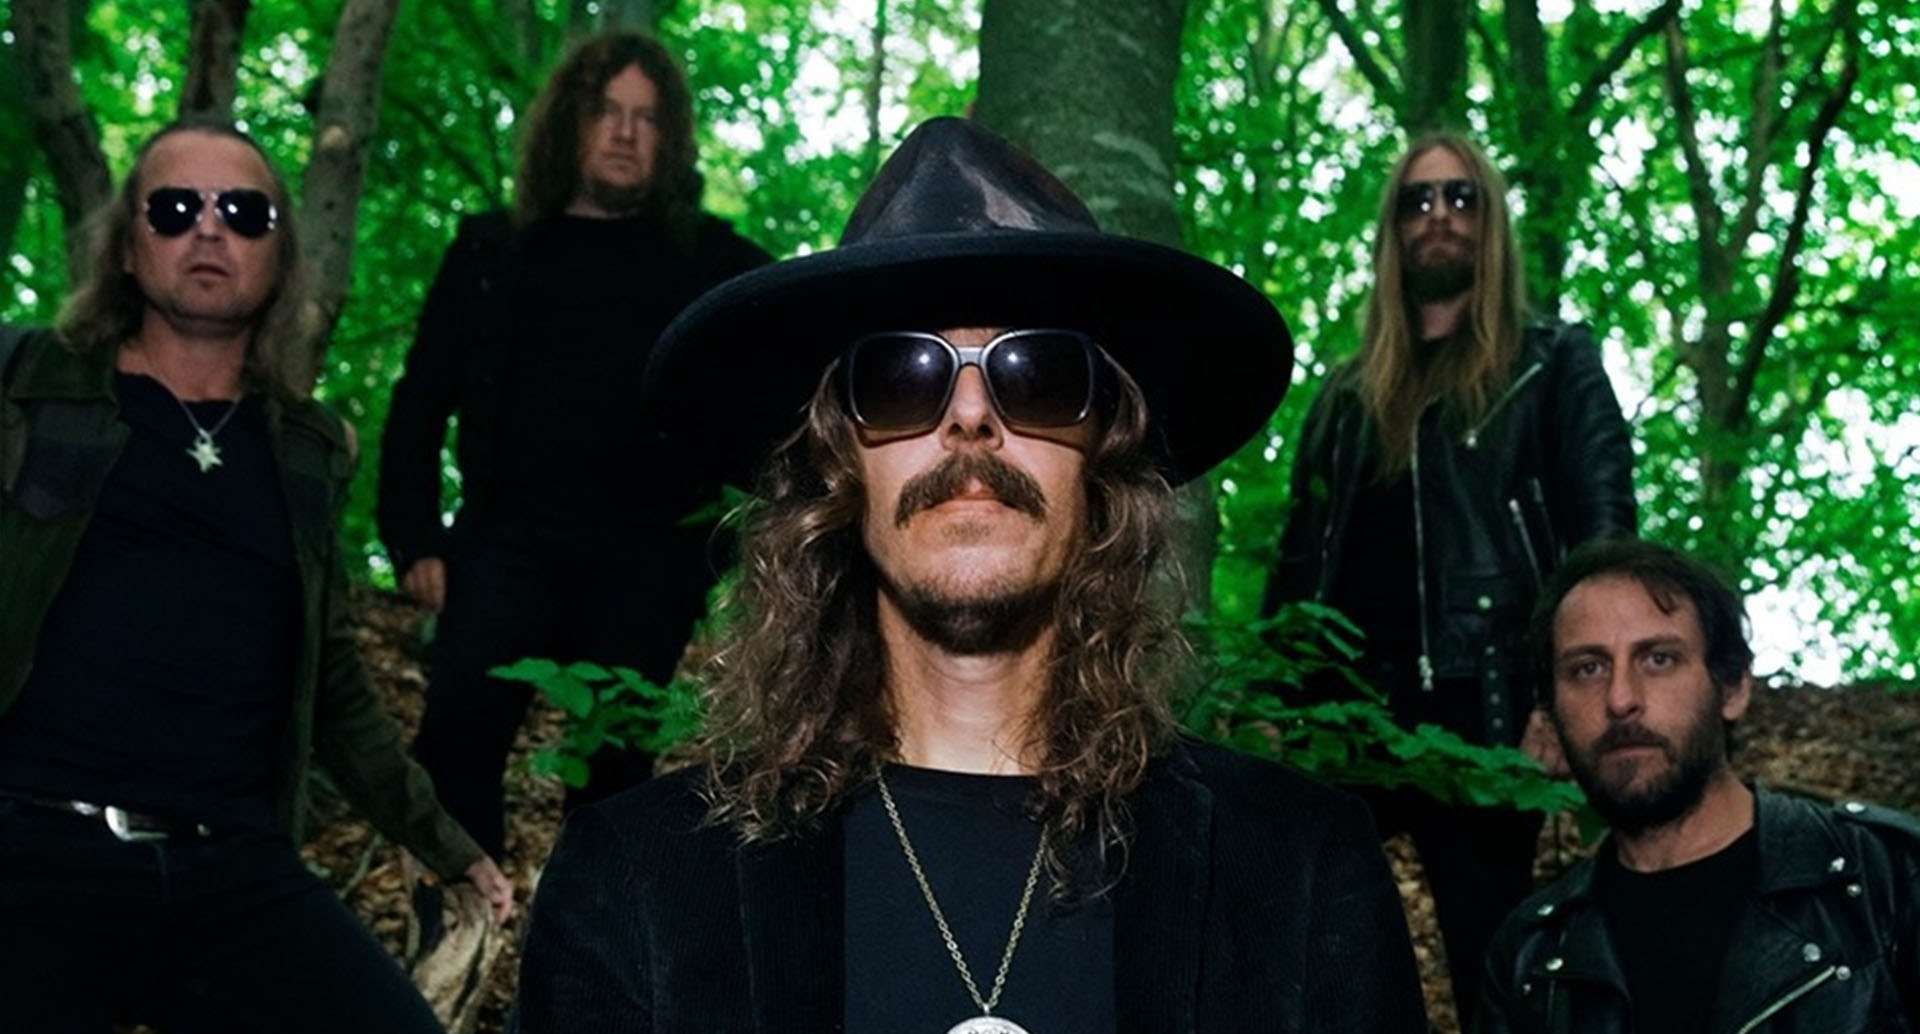 Opeth return to Singapore in December